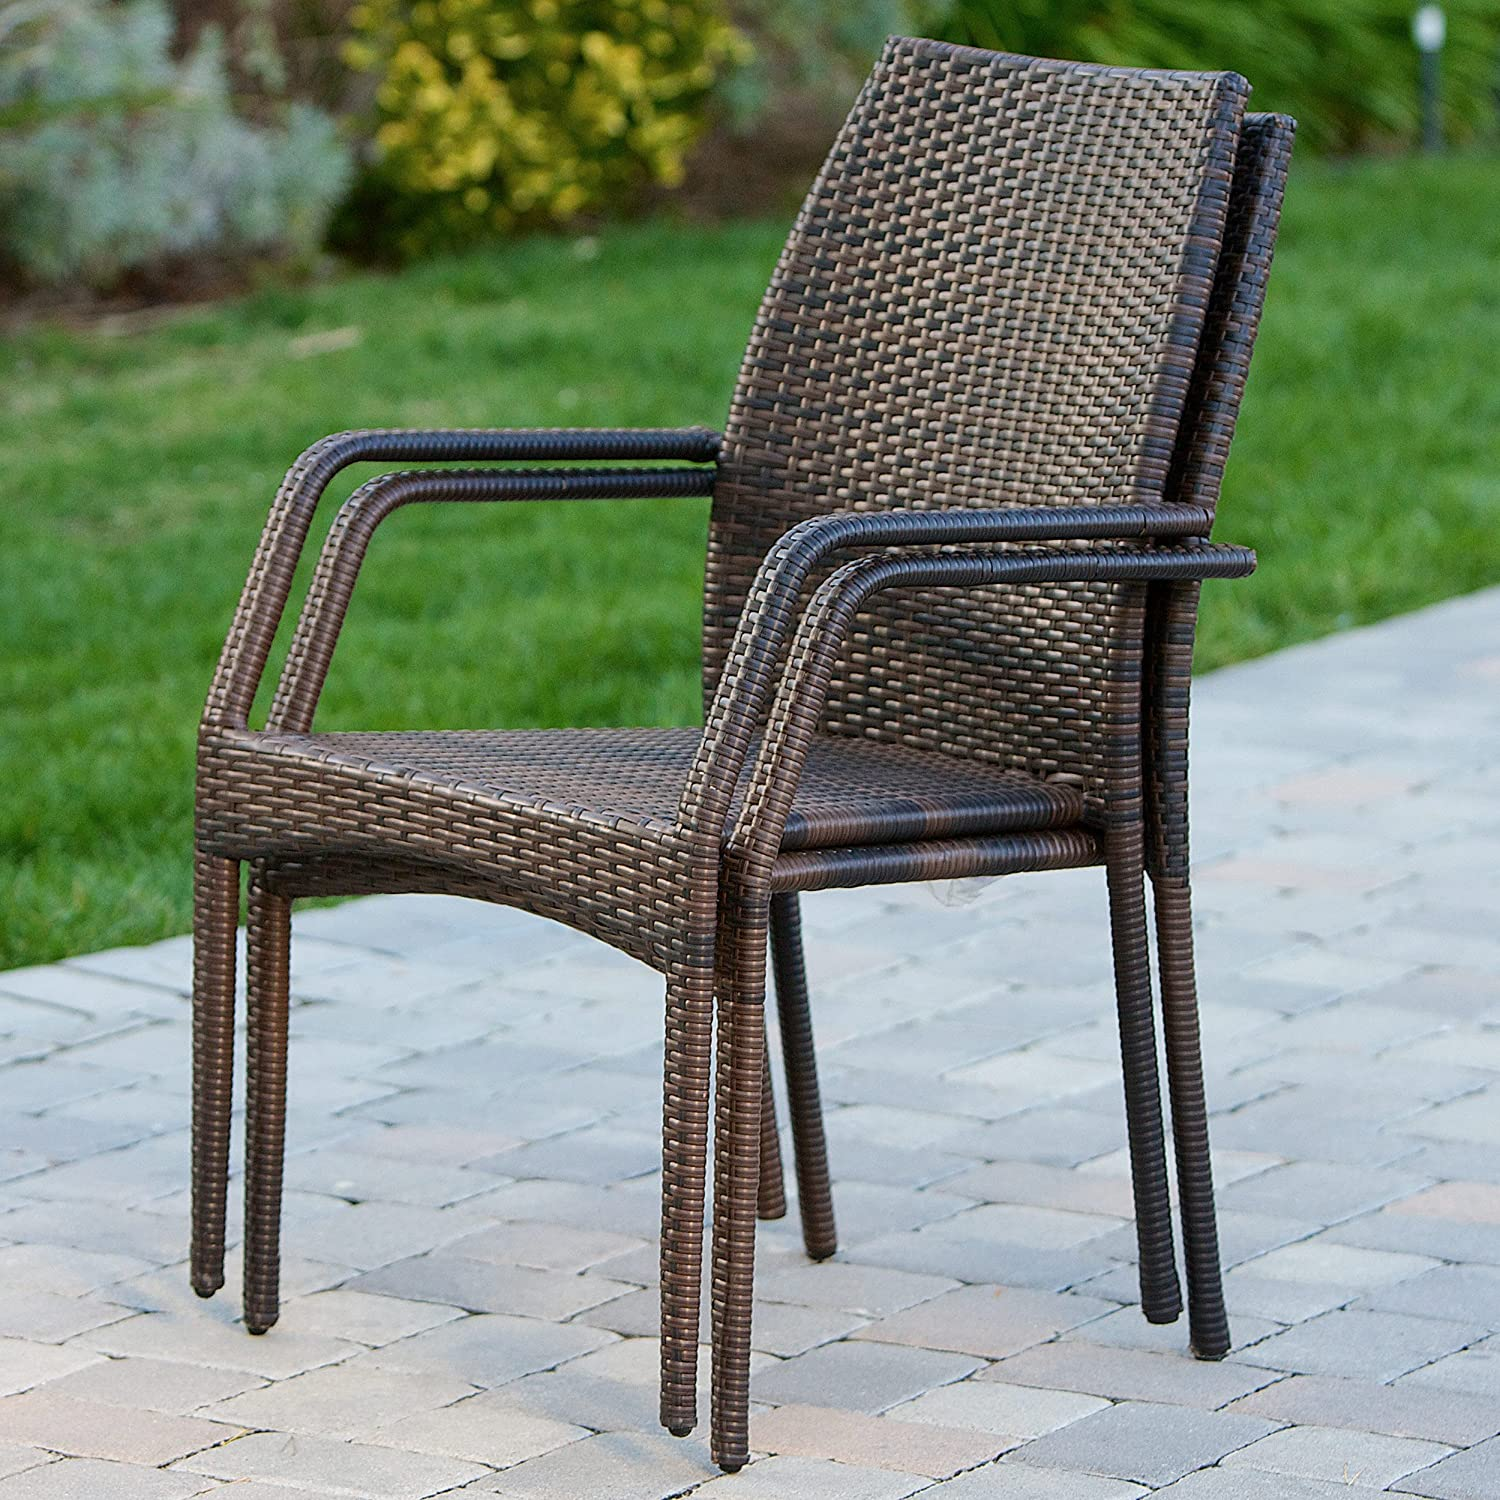 Christopher Knight Home Outdoor Wicker Stacking Chairs Set of 2 Perfect for Patio in Multibrown